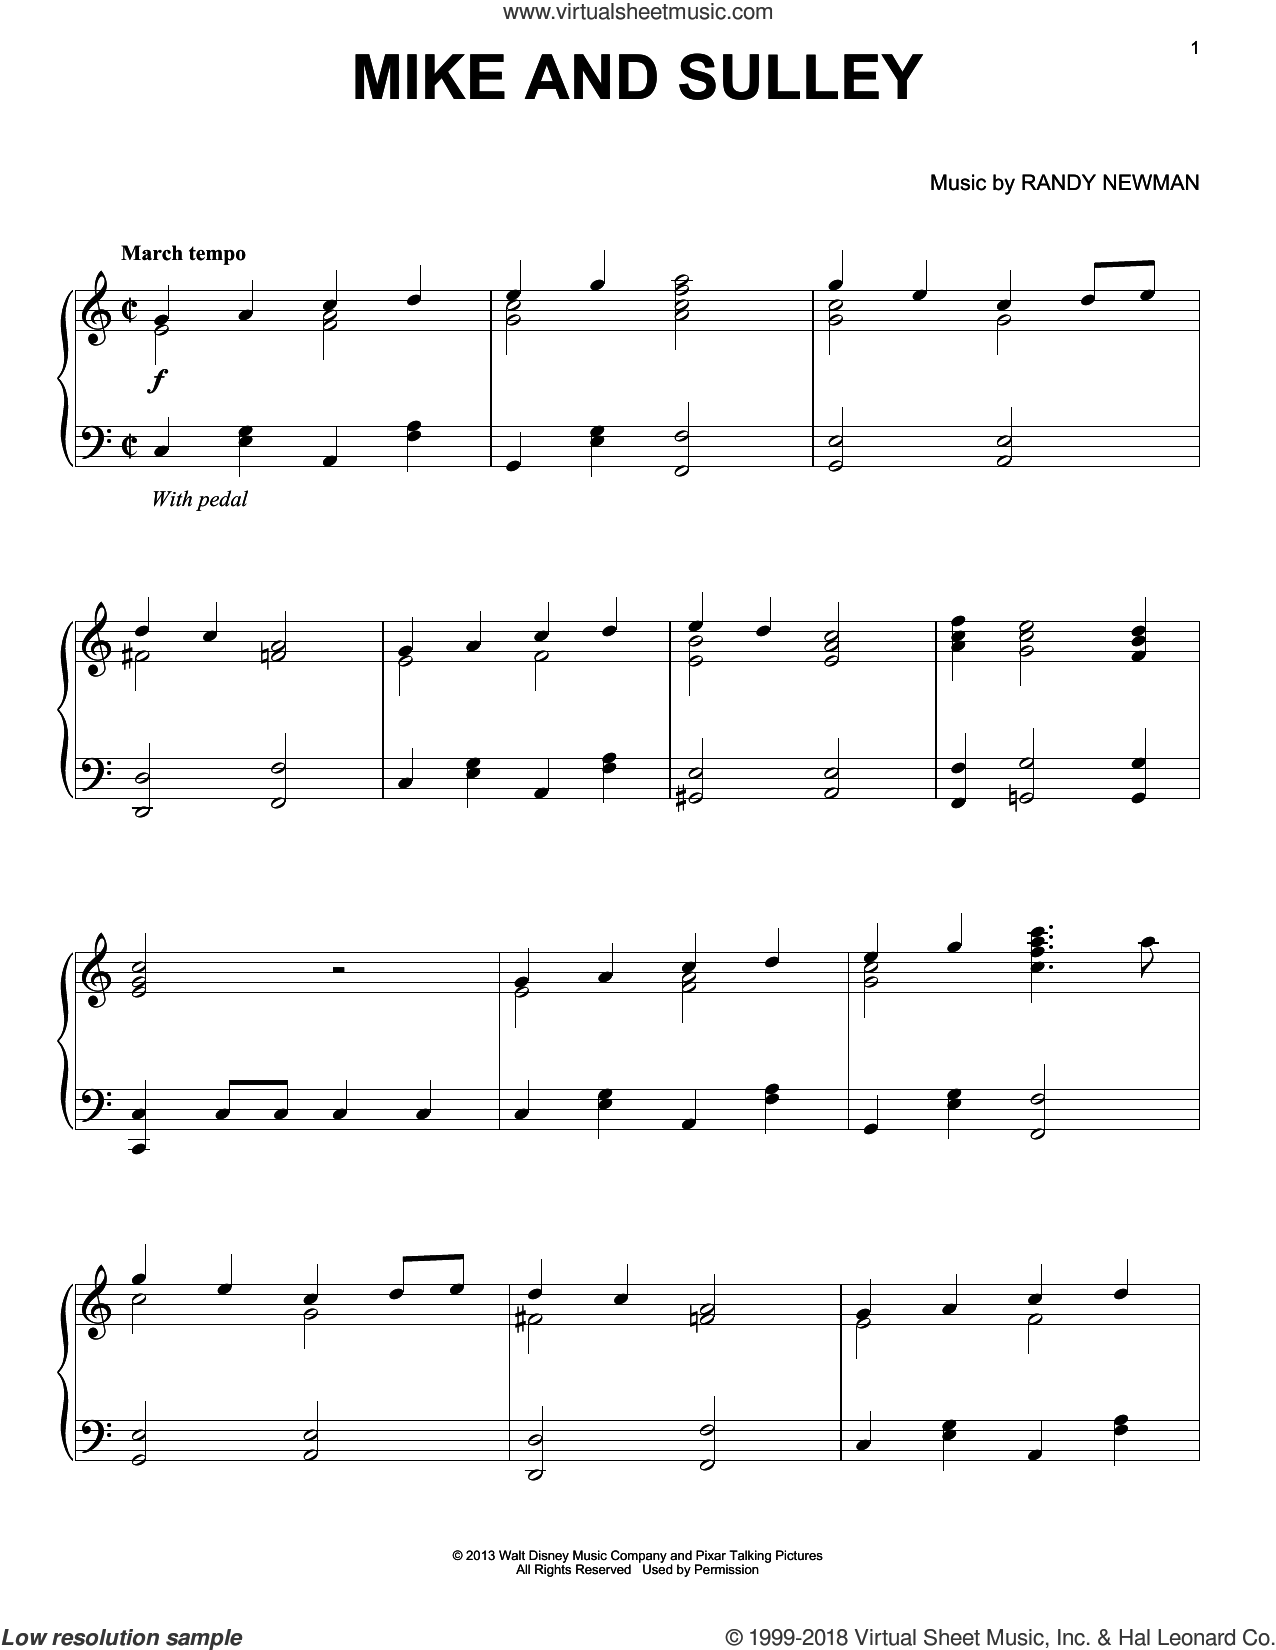 Mike And Sulley sheet music for piano solo by Randy Newman, Monsters University (Movie) and Monsters, Inc. (Movie), intermediate skill level